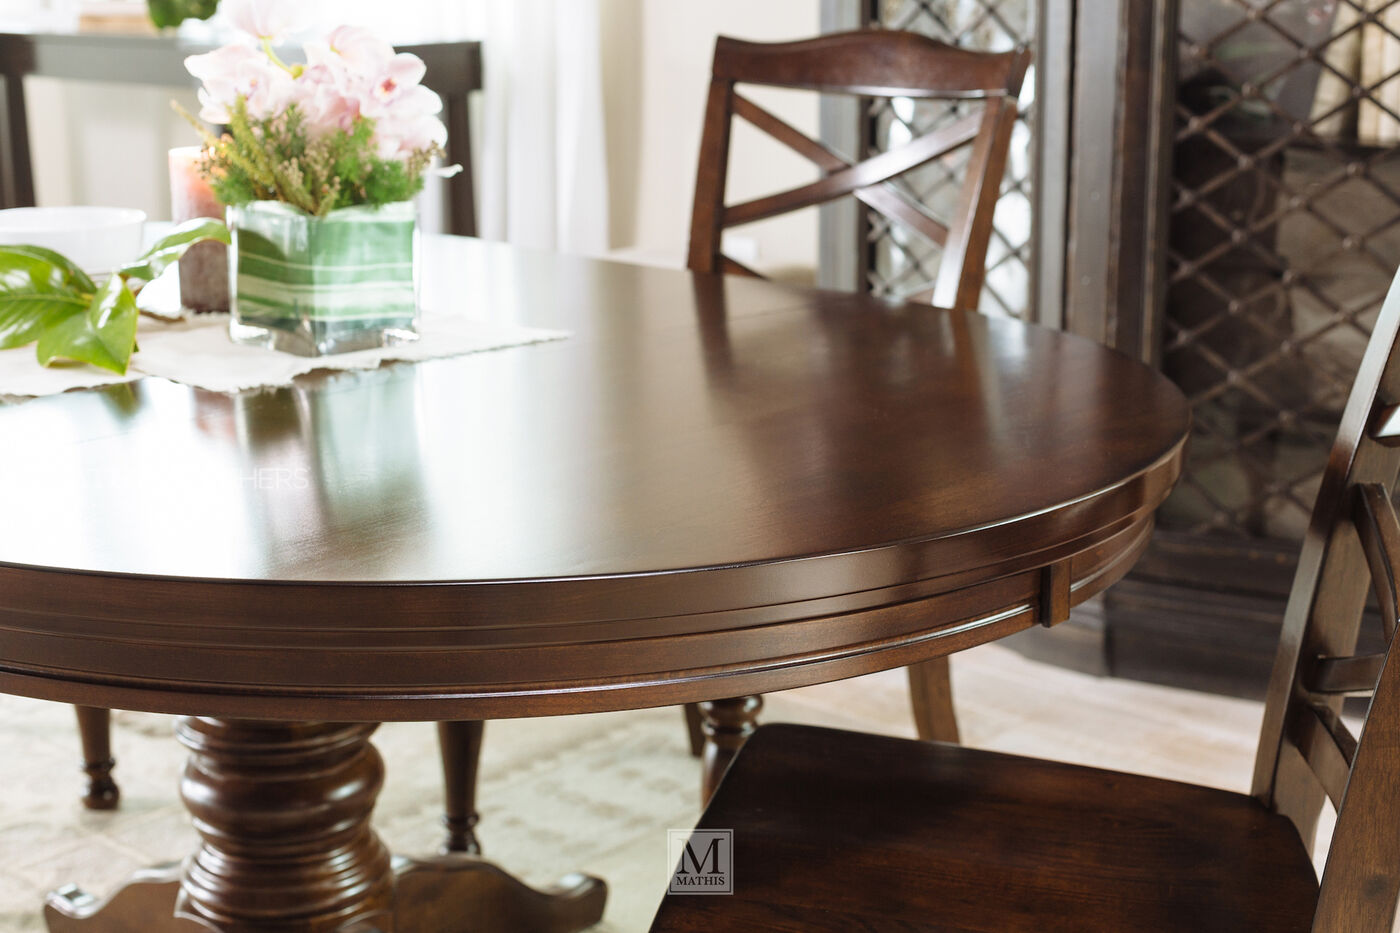 """48"""" To 72"""" Oval Pedestal Dining Table In Burnished Brown. Kitchen Organize. Country Kitchen Cabinets Pictures. Simple Modern Kitchen. Eileens Country Kitchen. Deep Drawer Organizer Kitchen. Kitchen Pantry Organizer Ideas. Cath Kidston Style Kitchen Accessories. Drawer Organizer Kitchen Utensils"""